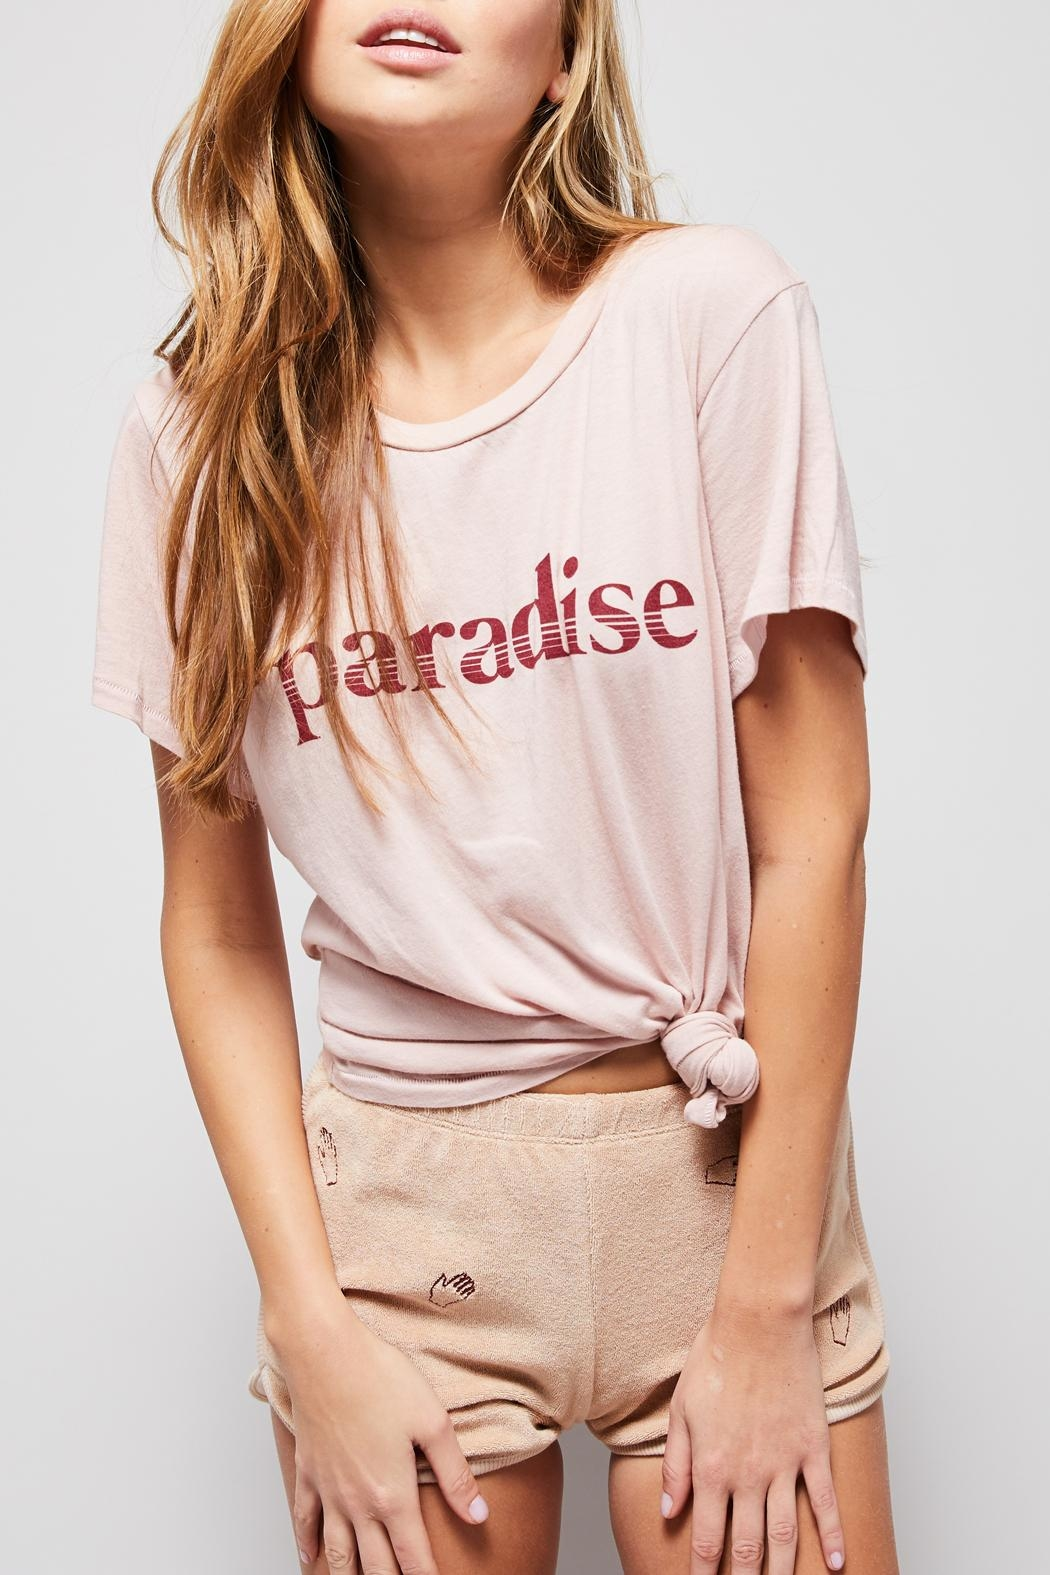 All Things Fabulous Paradise Vintage Tee - Main Image